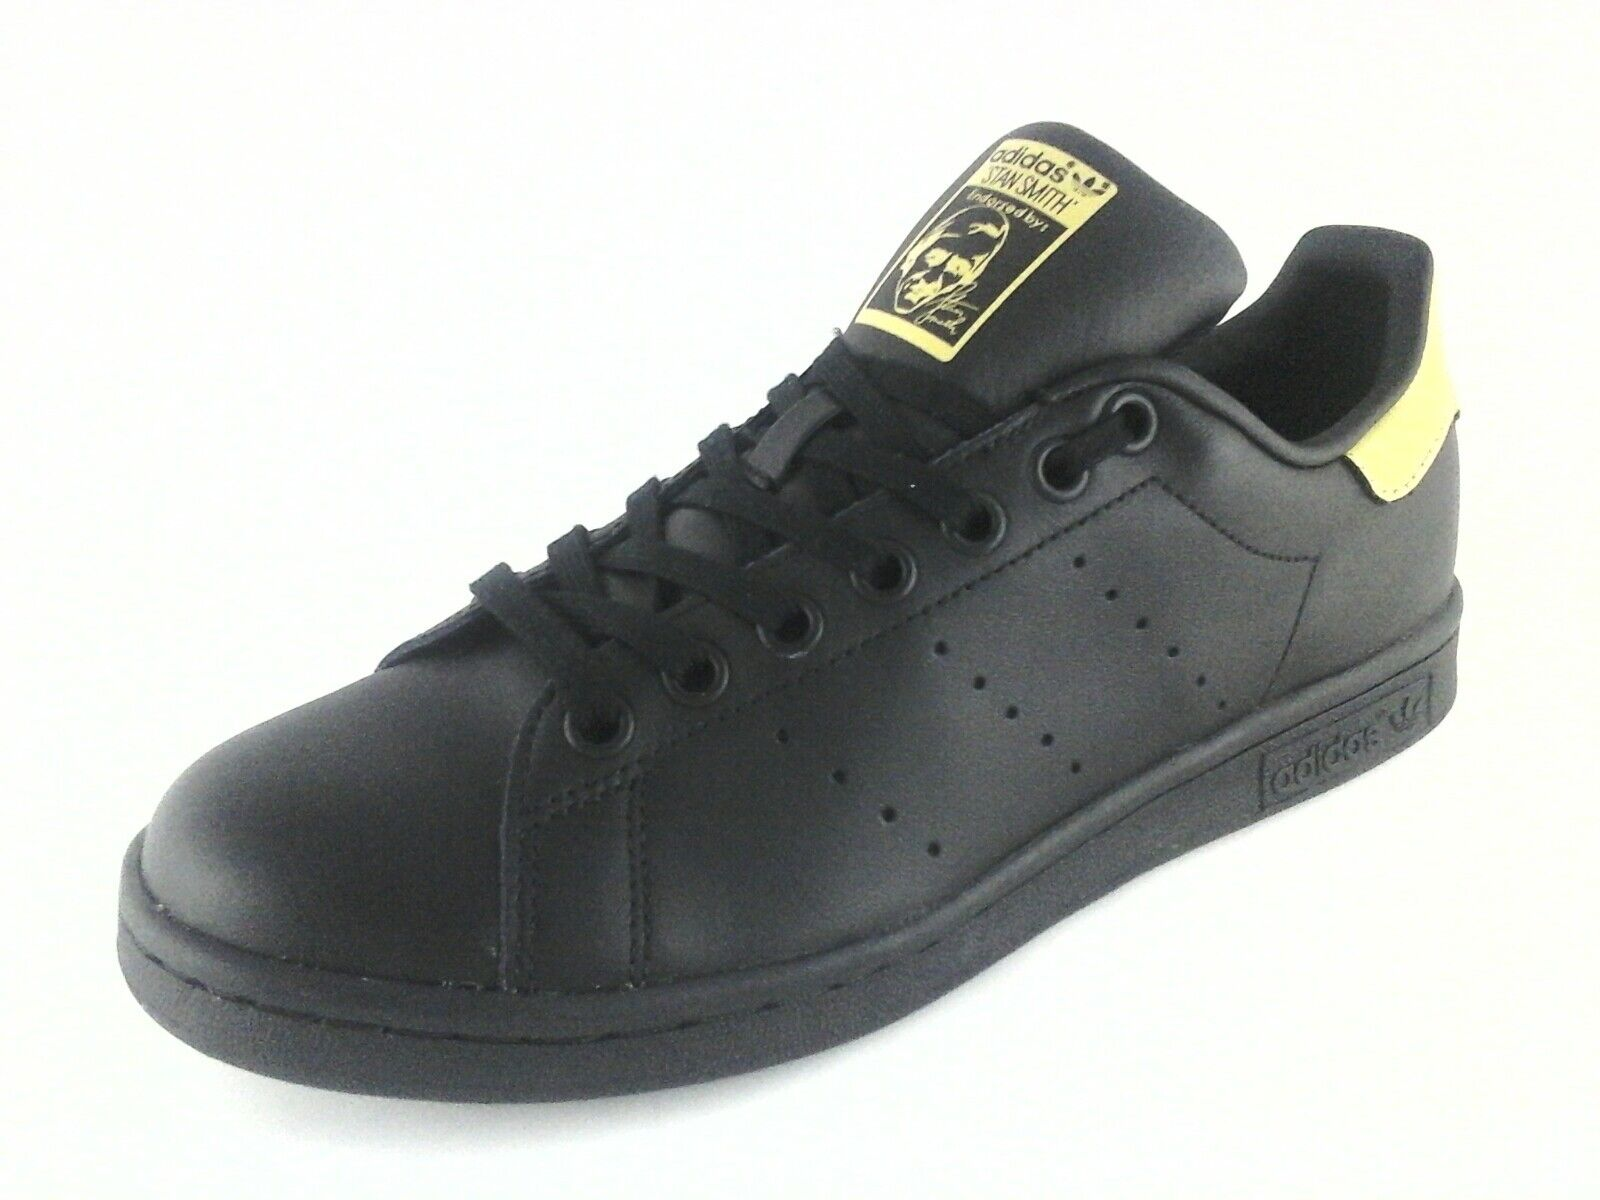 Details about Adidas Stan Smith Mens BB0208 Classic Sneakers Shoes Black & Gold US 6.5 UK 6